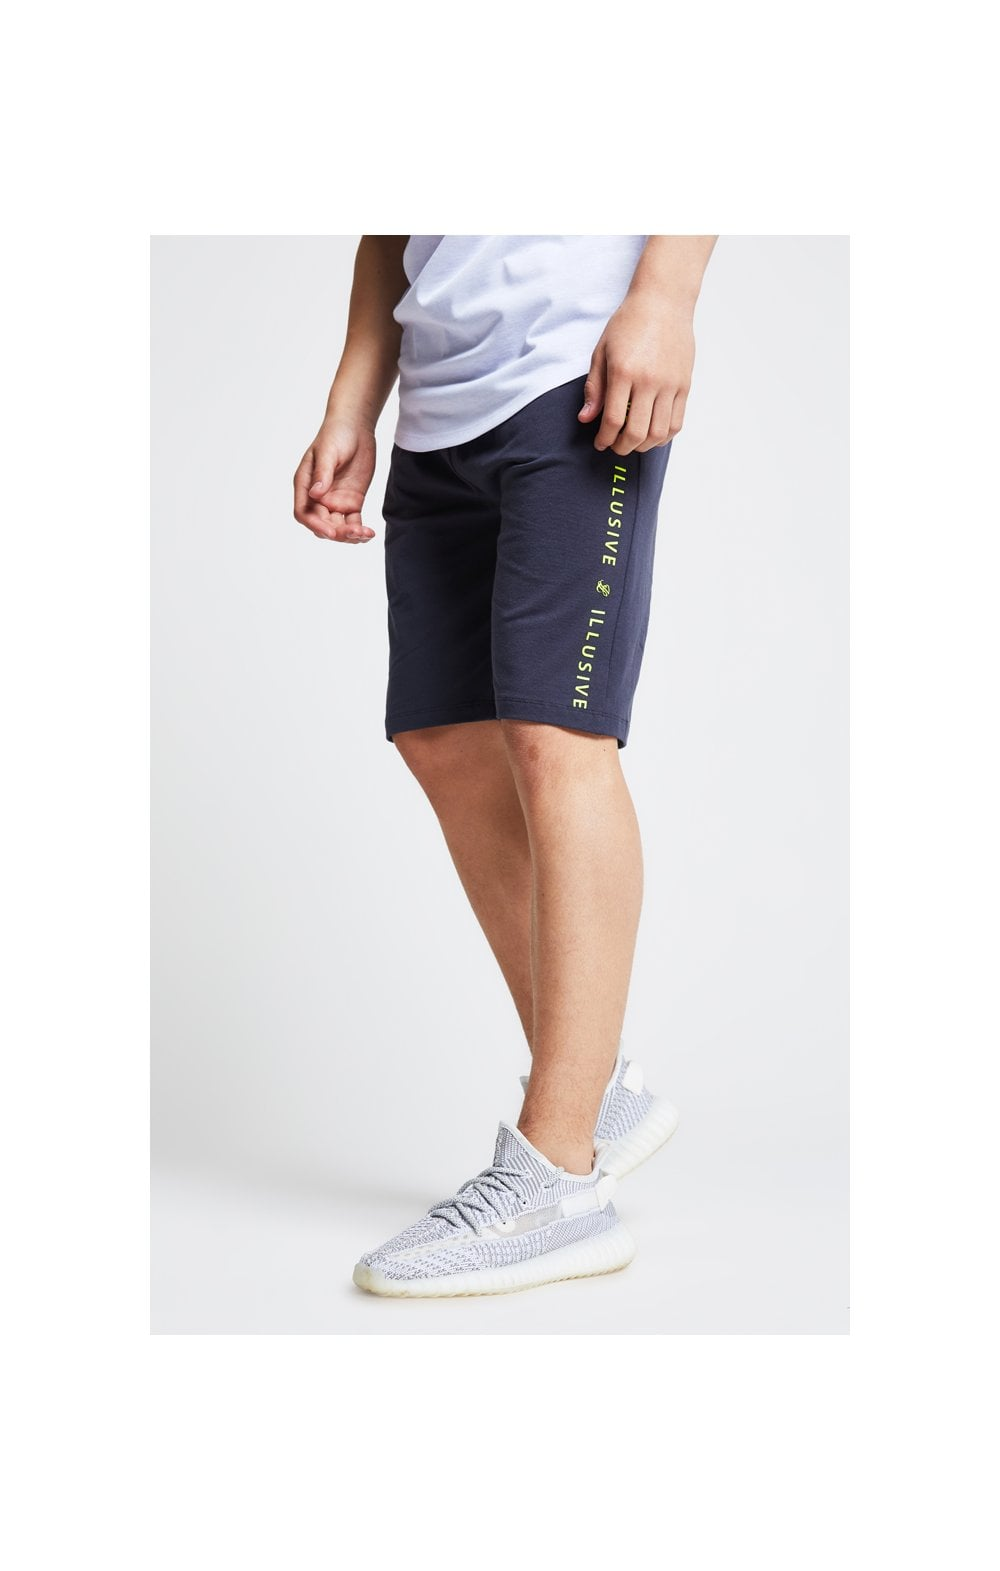 Illusive London Shorts Jersey - Grau und Neongelb